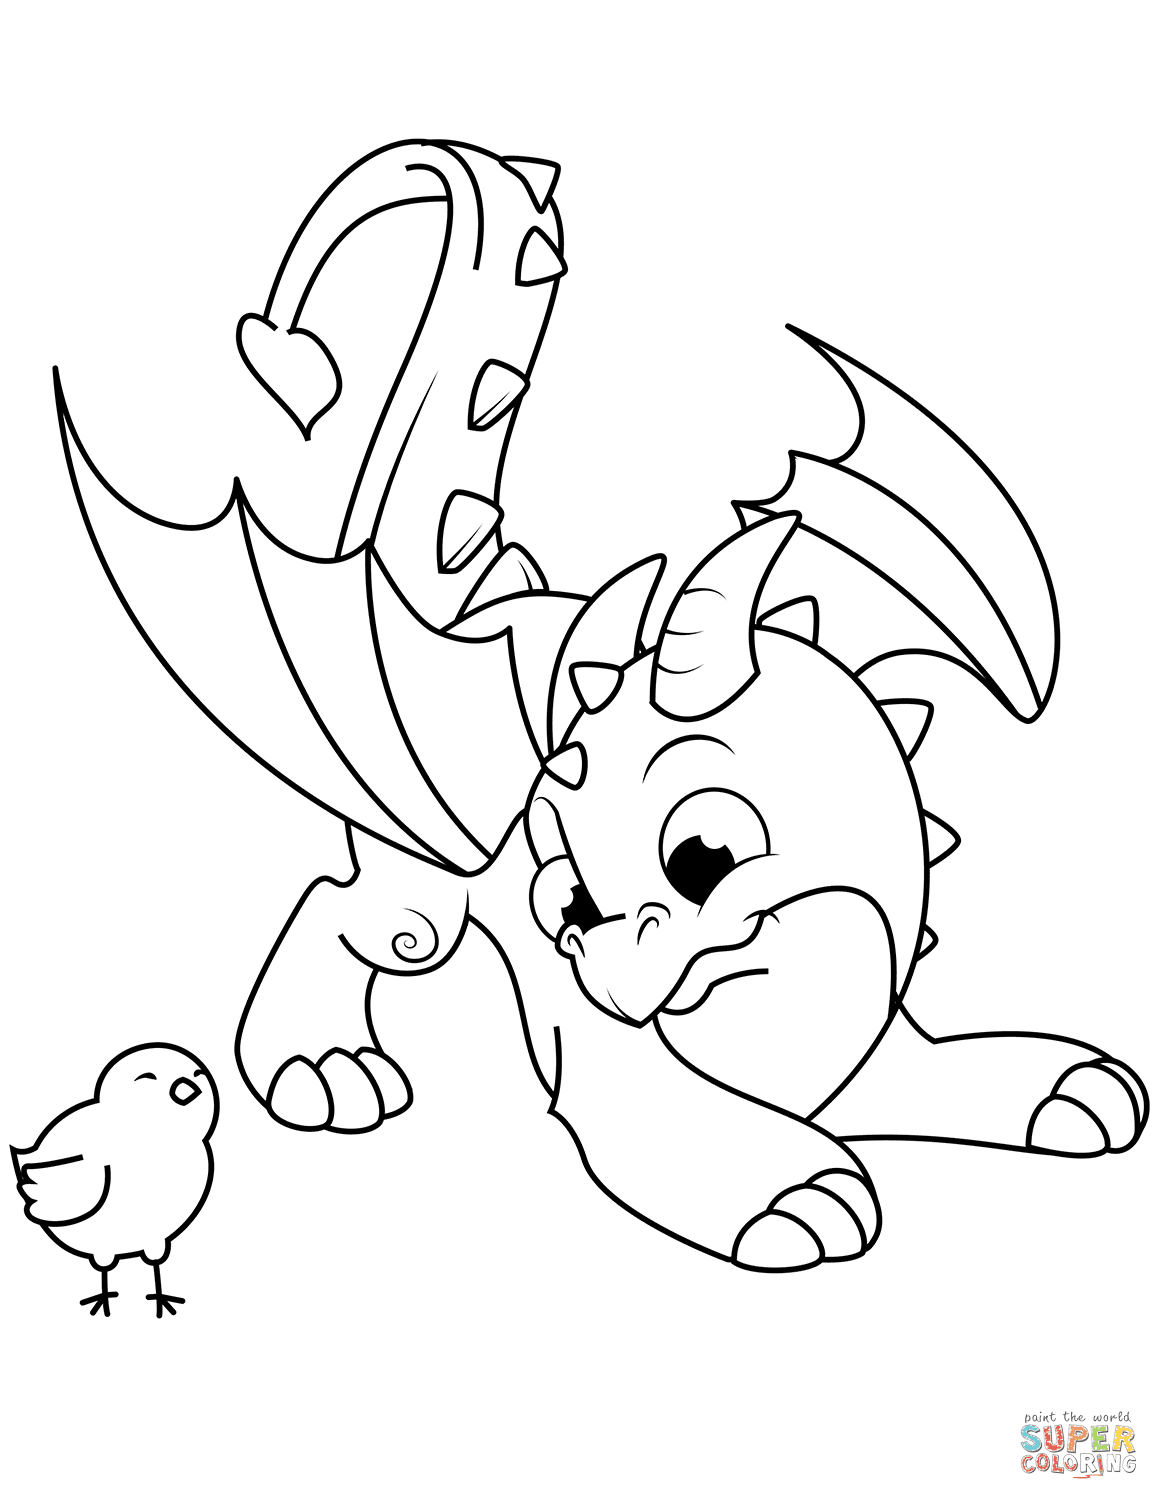 Angela Coloring Pages at GetColorings.com | Free printable ...